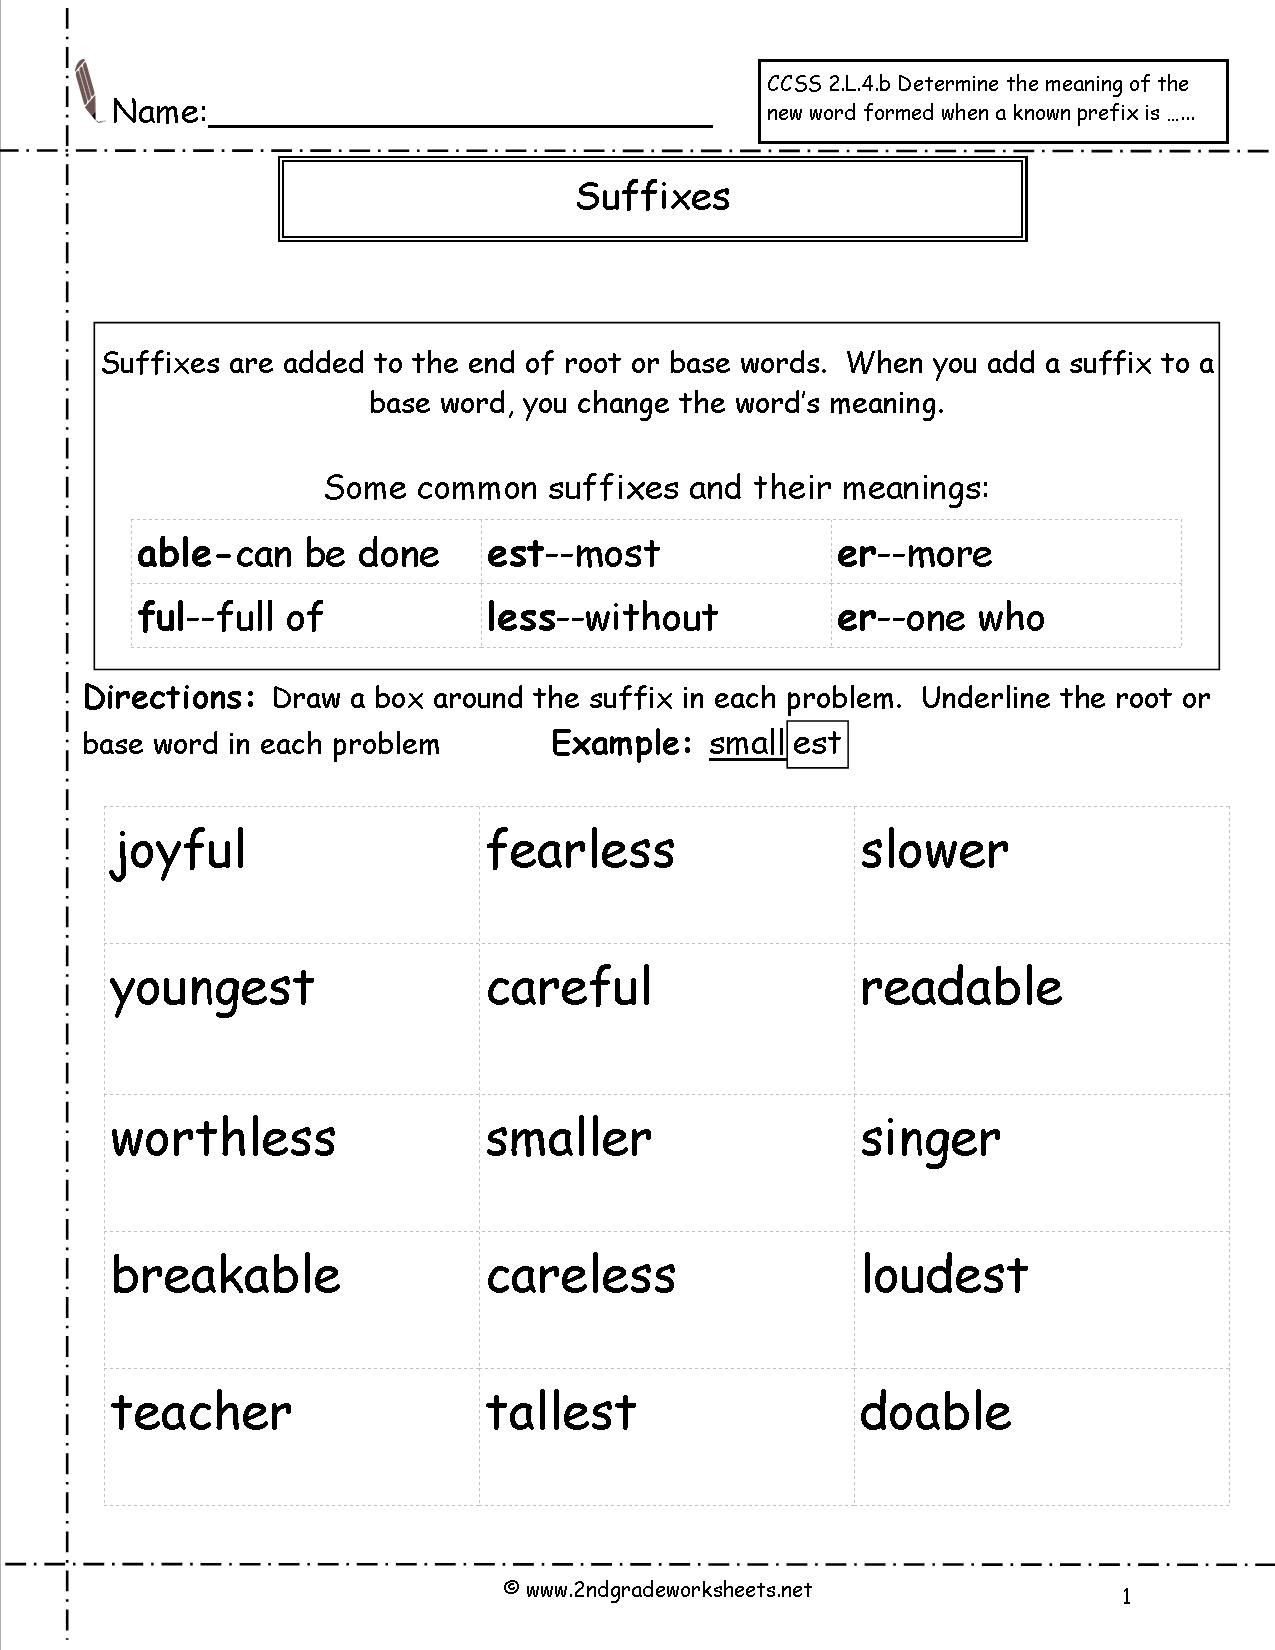 Suffix Worksheets 3rd Grade 41 Innovative Prefix Worksheets for You